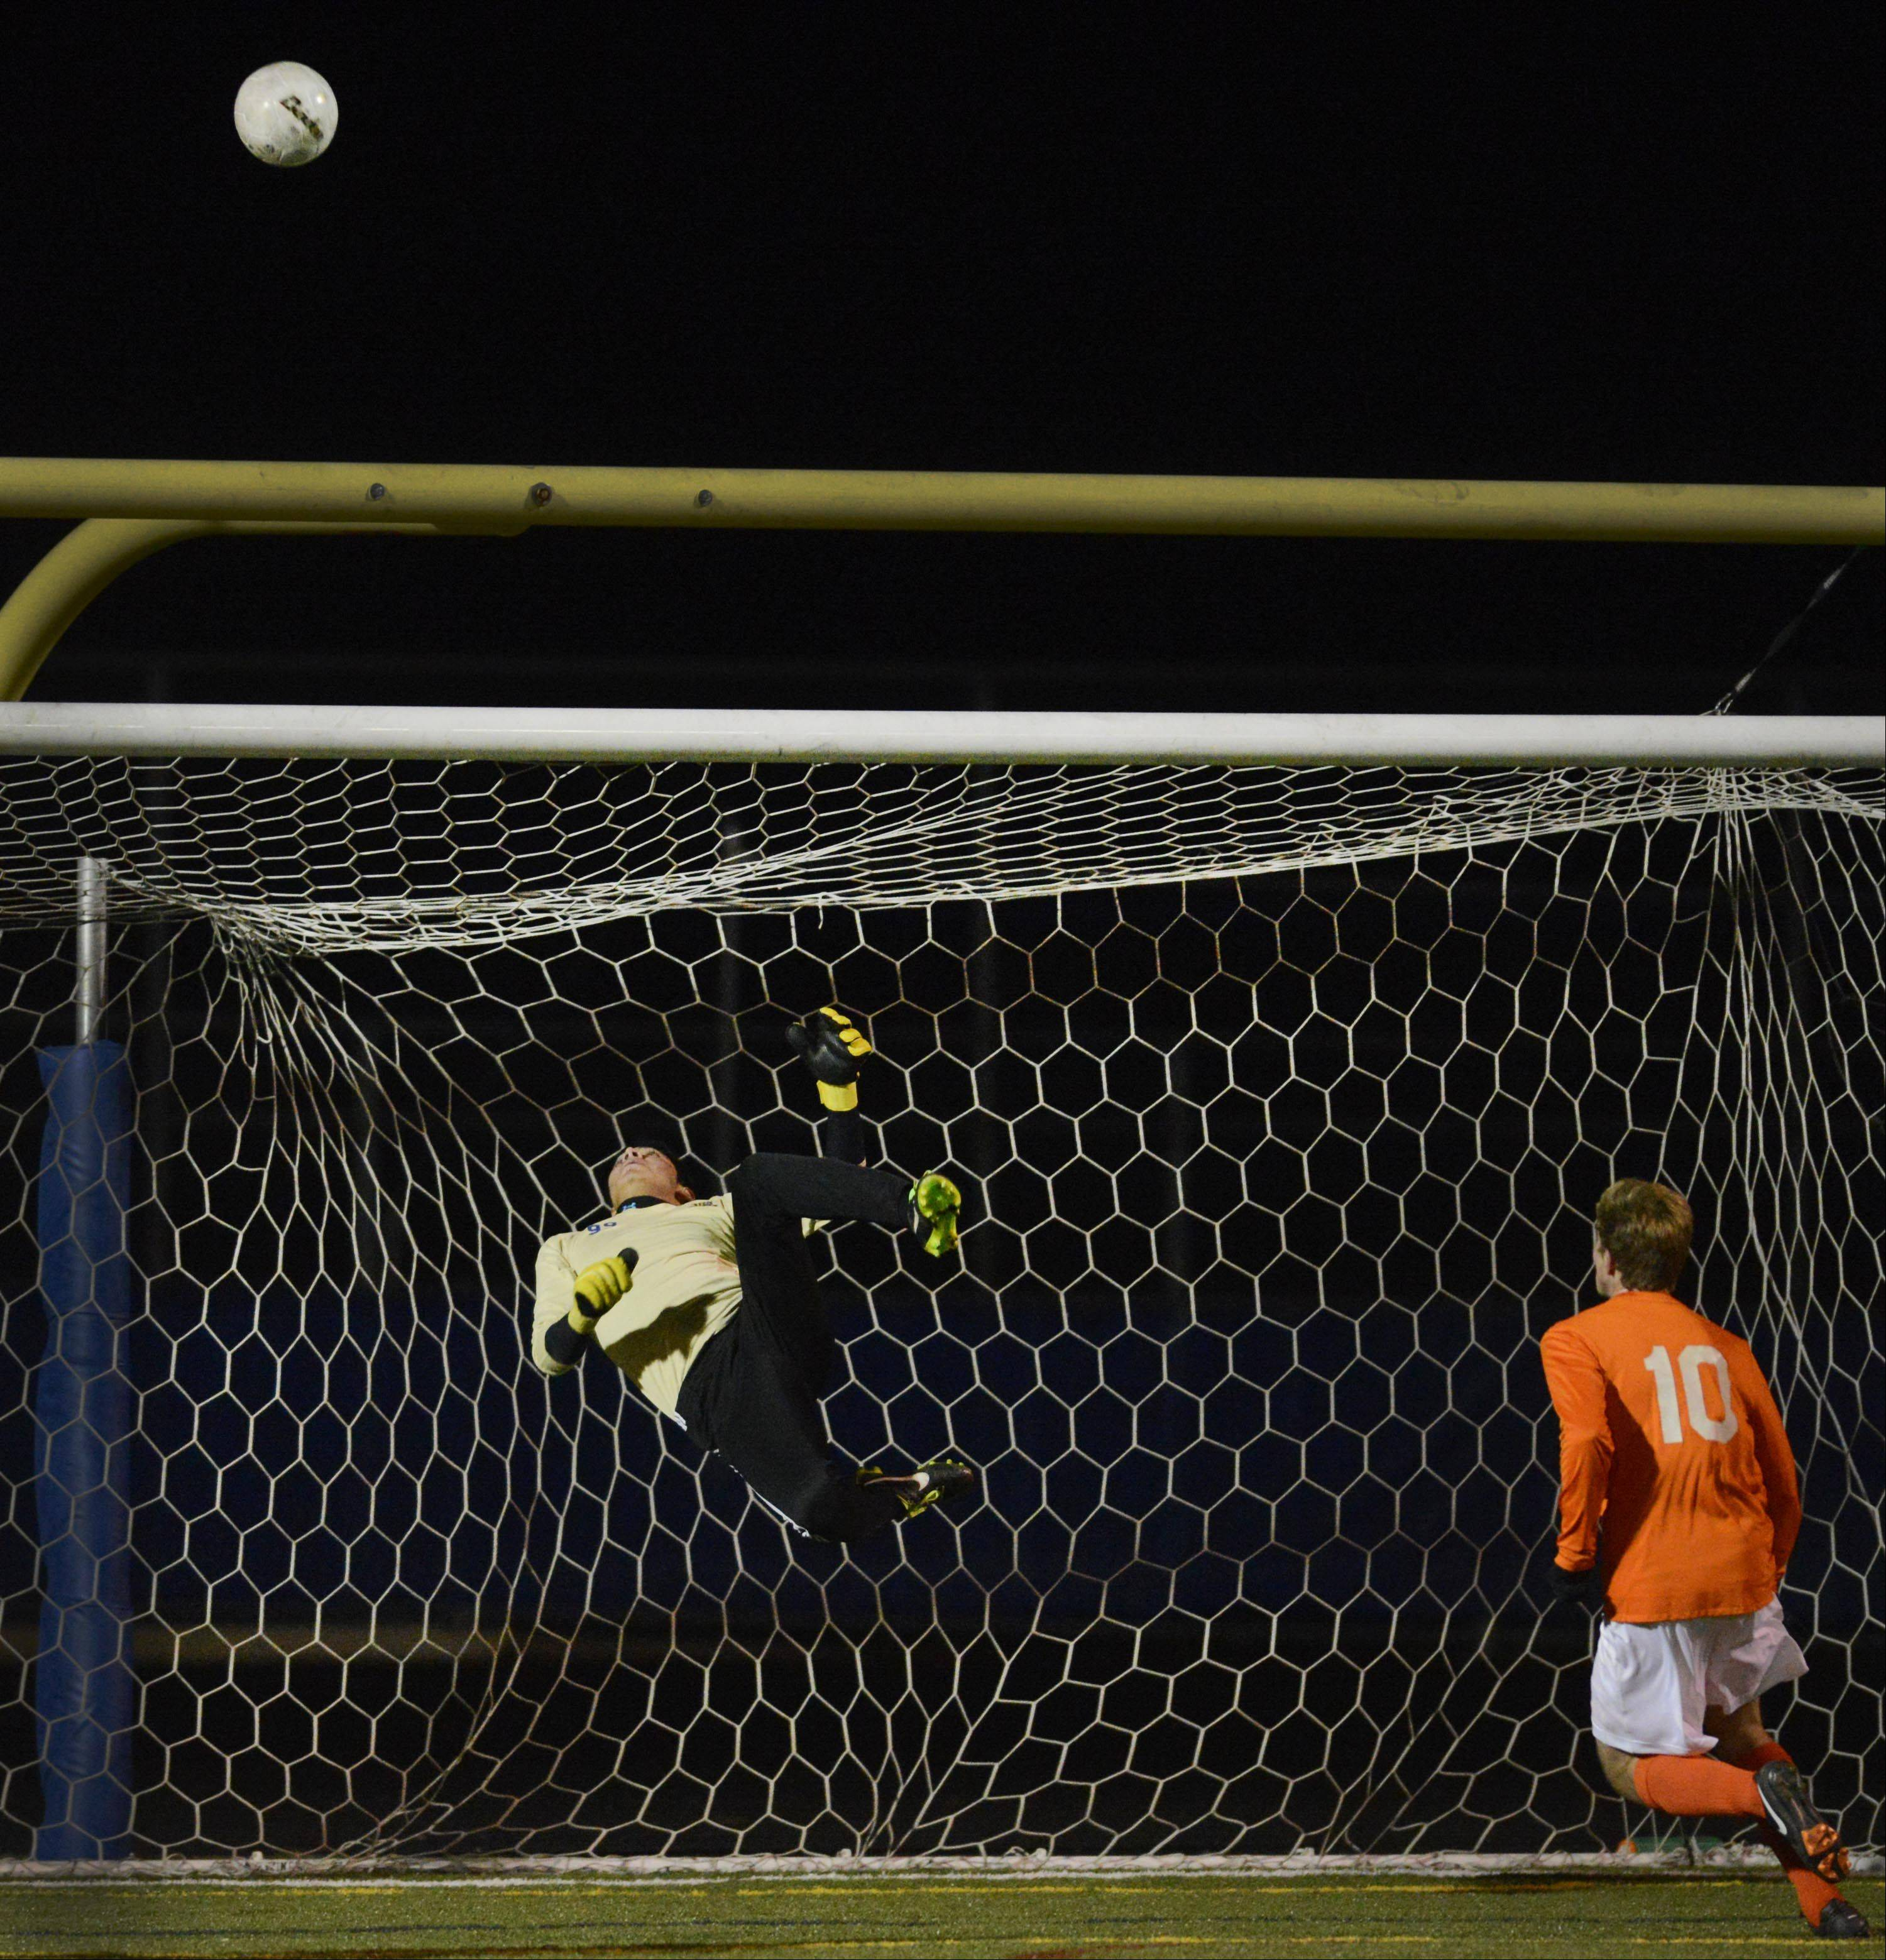 John Starks/jstarks@dailyherald.comWheeling goalkeeper Gary Mendoza watches a shot he deflected from Edwardsville's Lando Paul bounce up over the net in the Class 3A soccer state championship game Saturday night in Hoffman Estates.